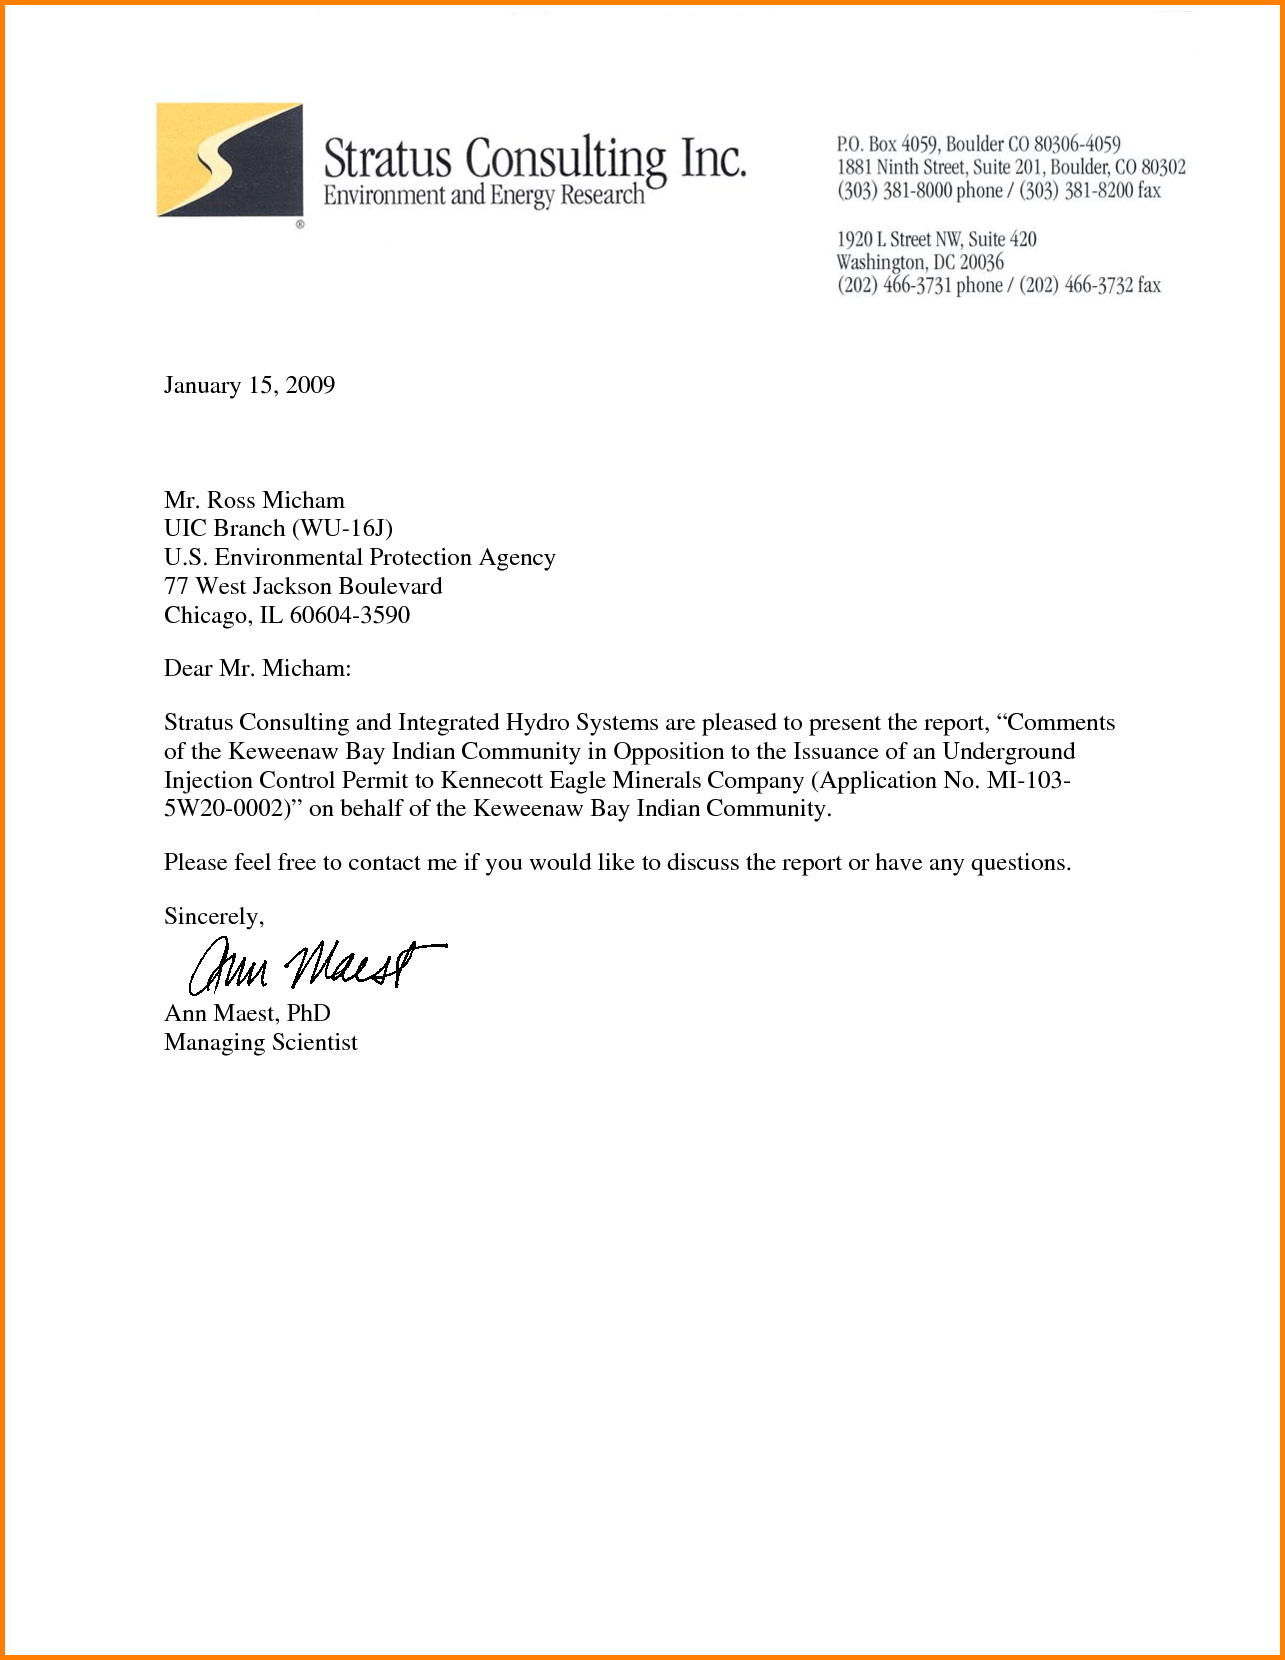 sample business letter on letterhead   Yelom.myphonecompany.co